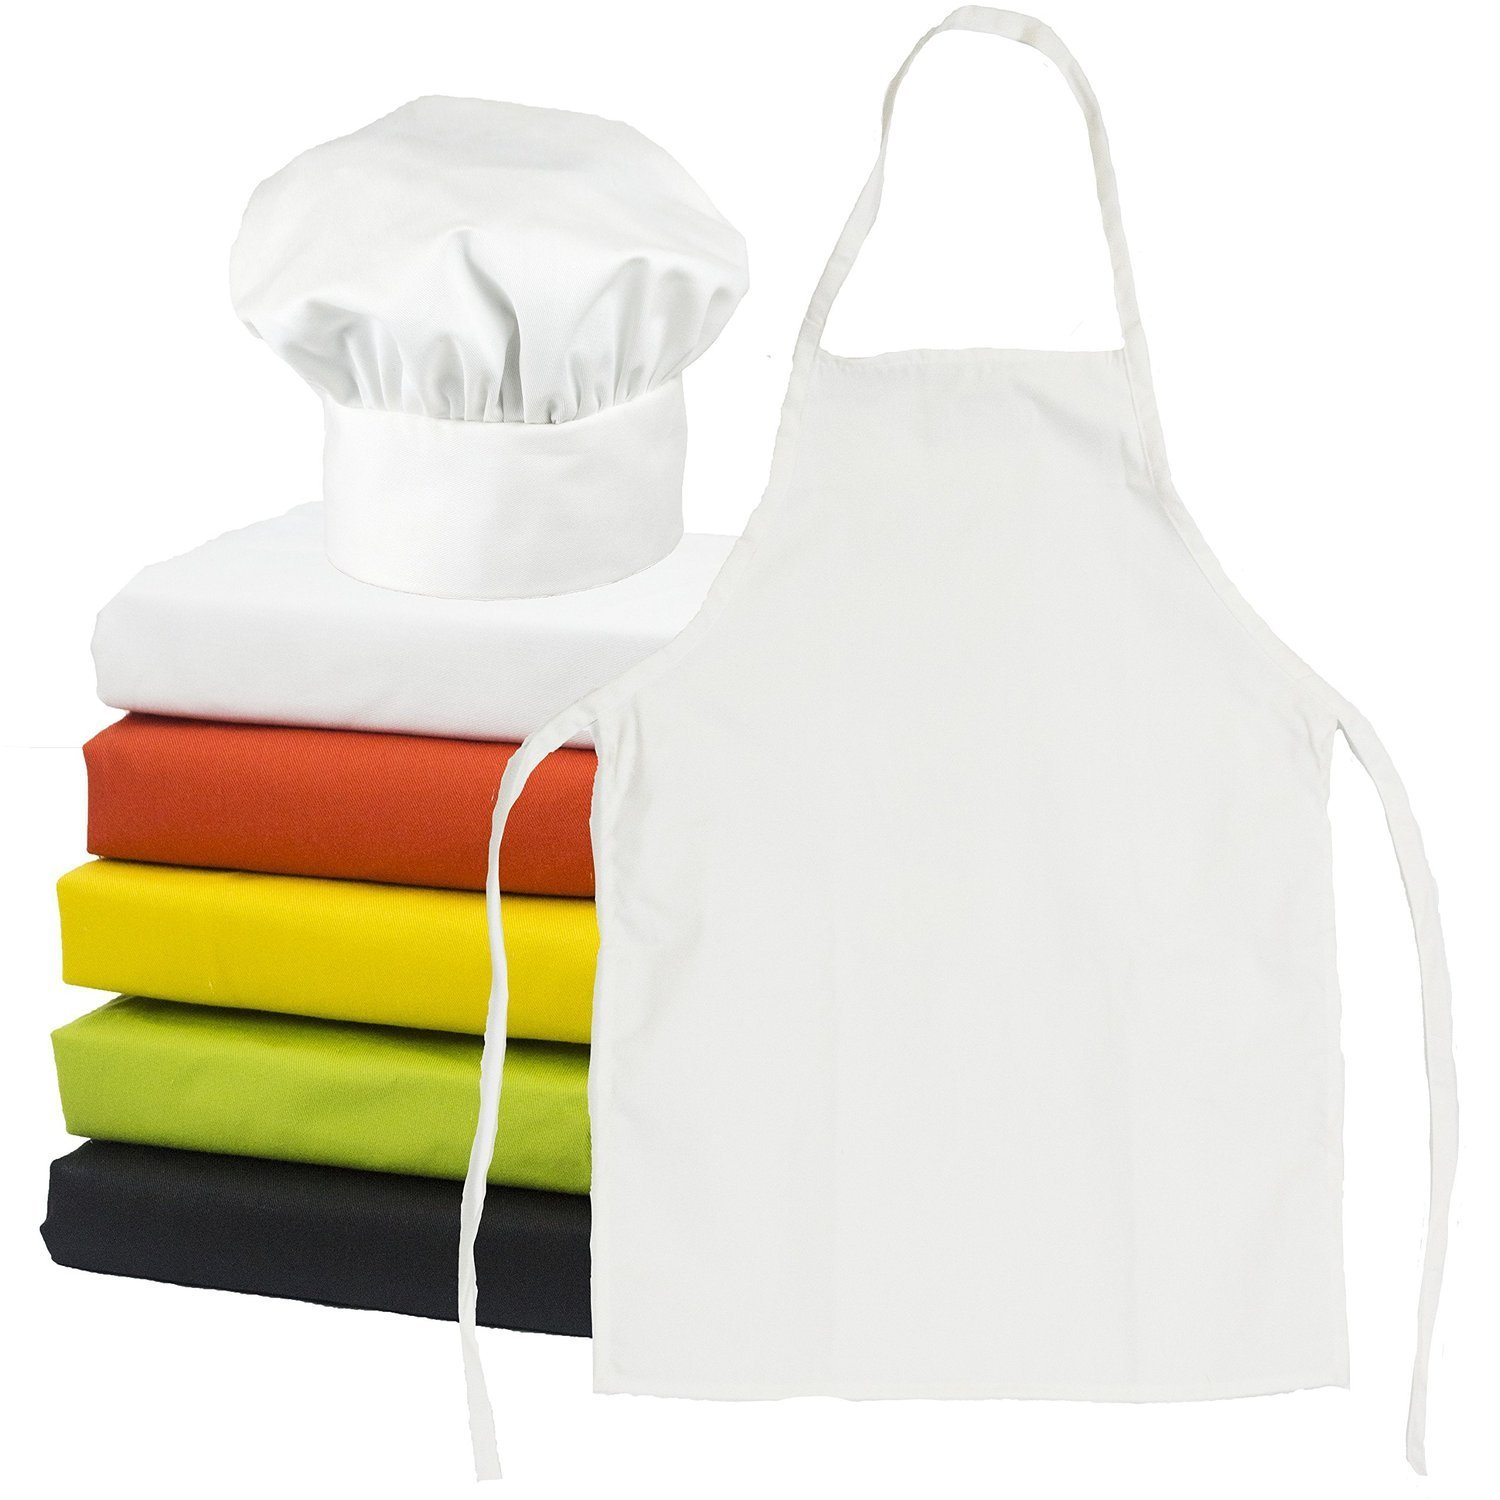 Odelia ObviousChef Kids - Child's Chef Hat Apron Set, Kid's Size, Children's Kitchen Cooking and Baking Wear Kit for Those Chefs in Training, Size (M 6-12 Year, White) by Odelia